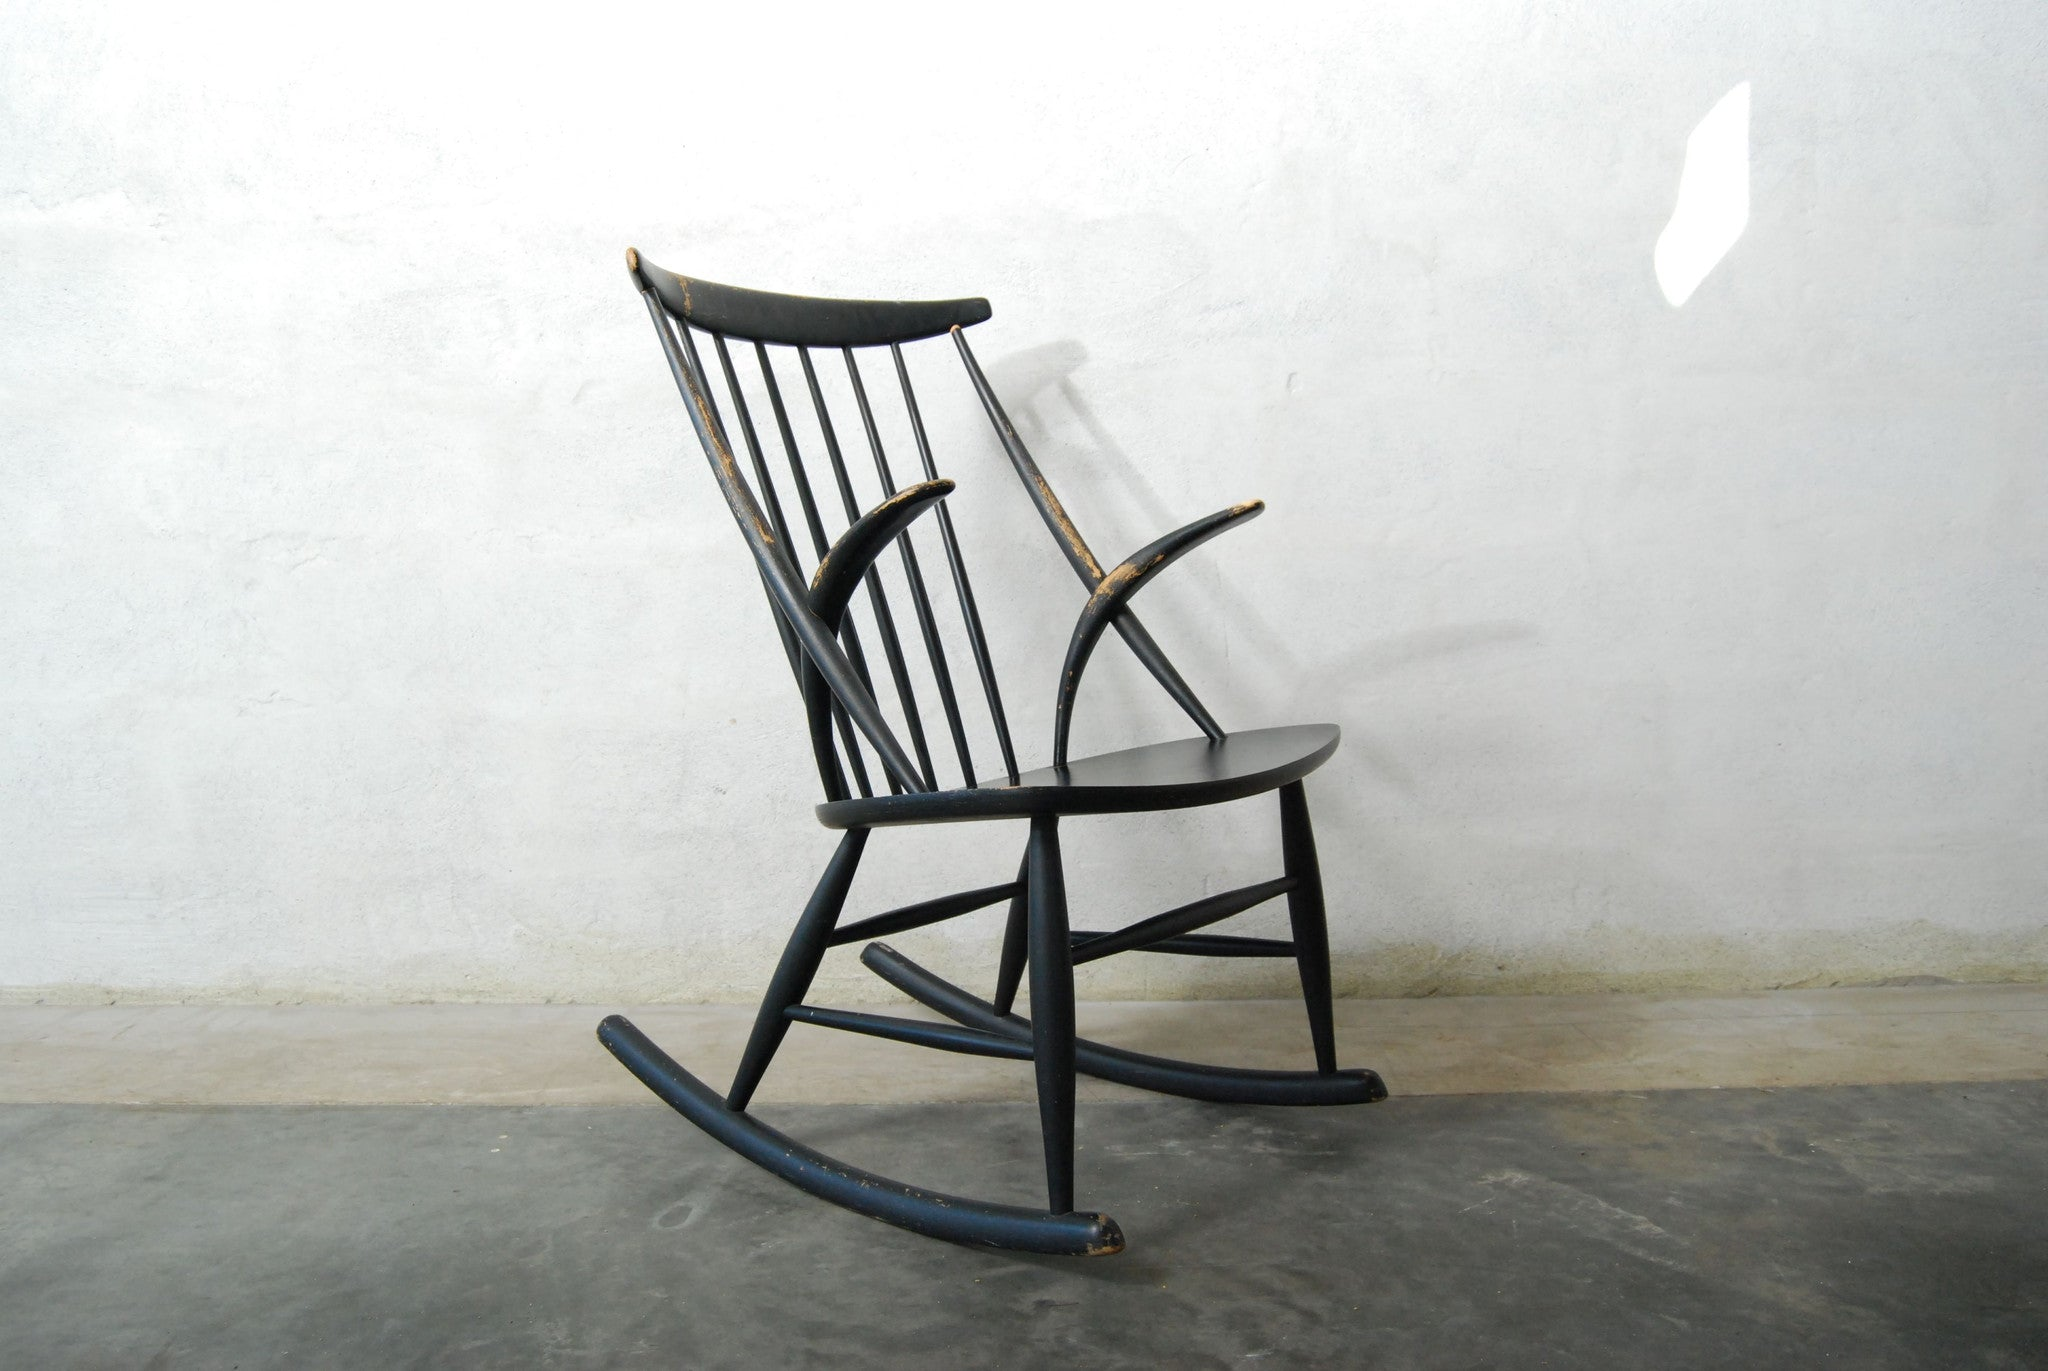 Rocking chair by Illum Wikkels